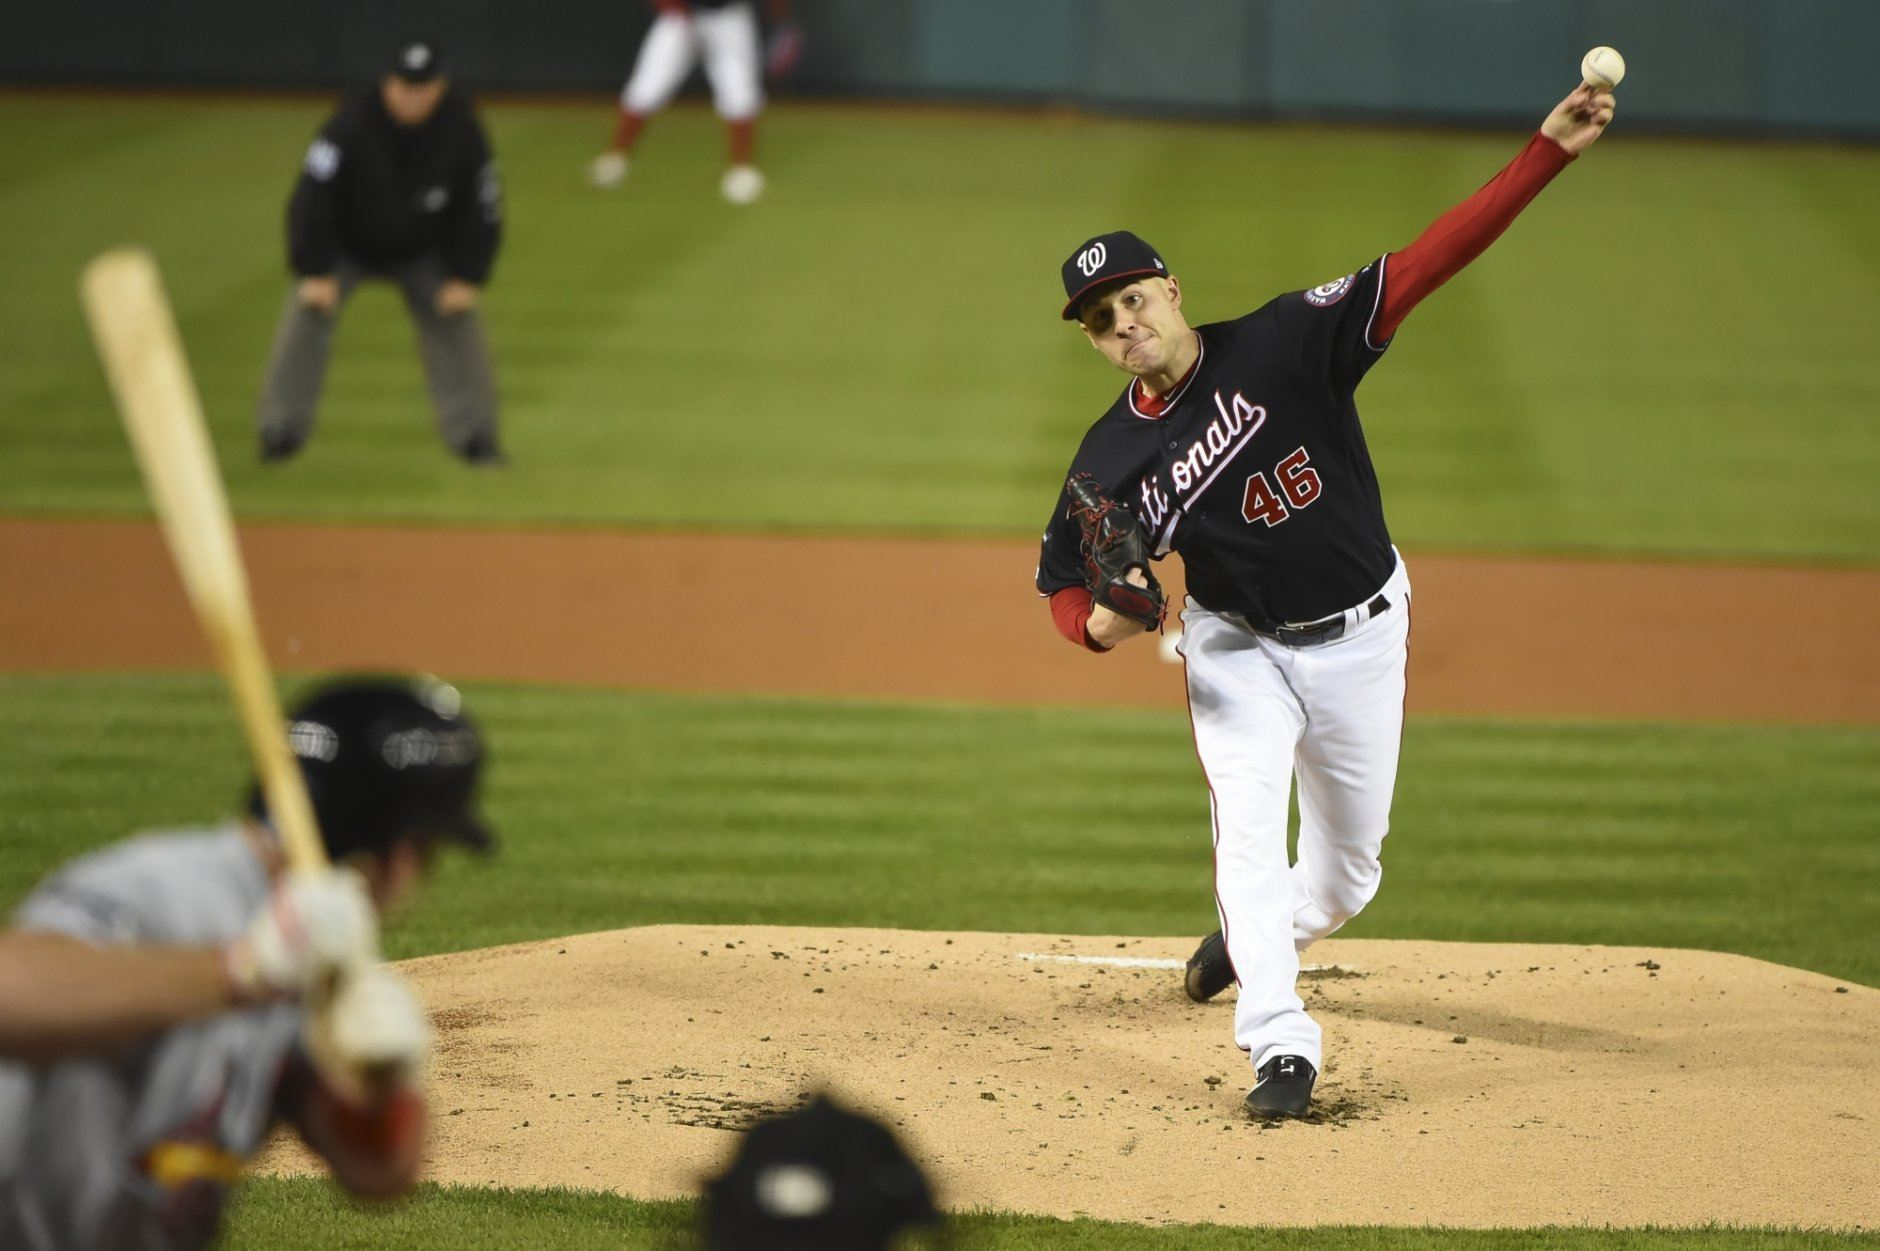 Washington Nationals' Patrick Corbin throws during the first inning of Game 4 of the baseball National League Championship Series against the St. Louis Cardinals Tuesday, Oct. 15, 2019, in Washington. (AP Photo/Will Newton, Pool)